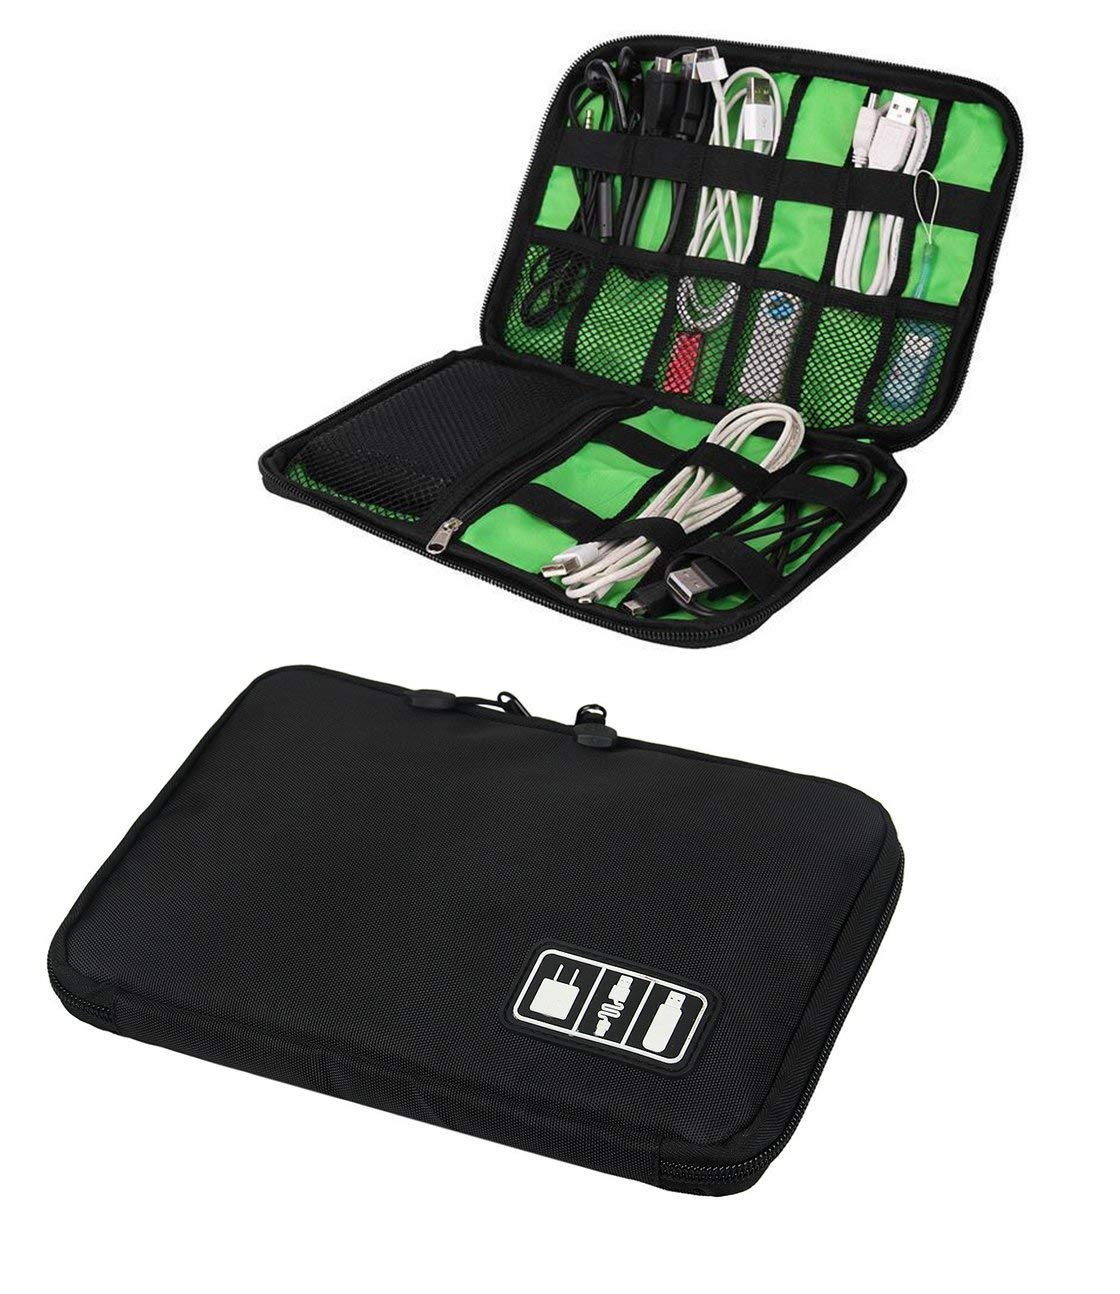 89b80084f122 Get Quotations · Portable Travel Electronics Cable Organizer Bag for Hard  Drives